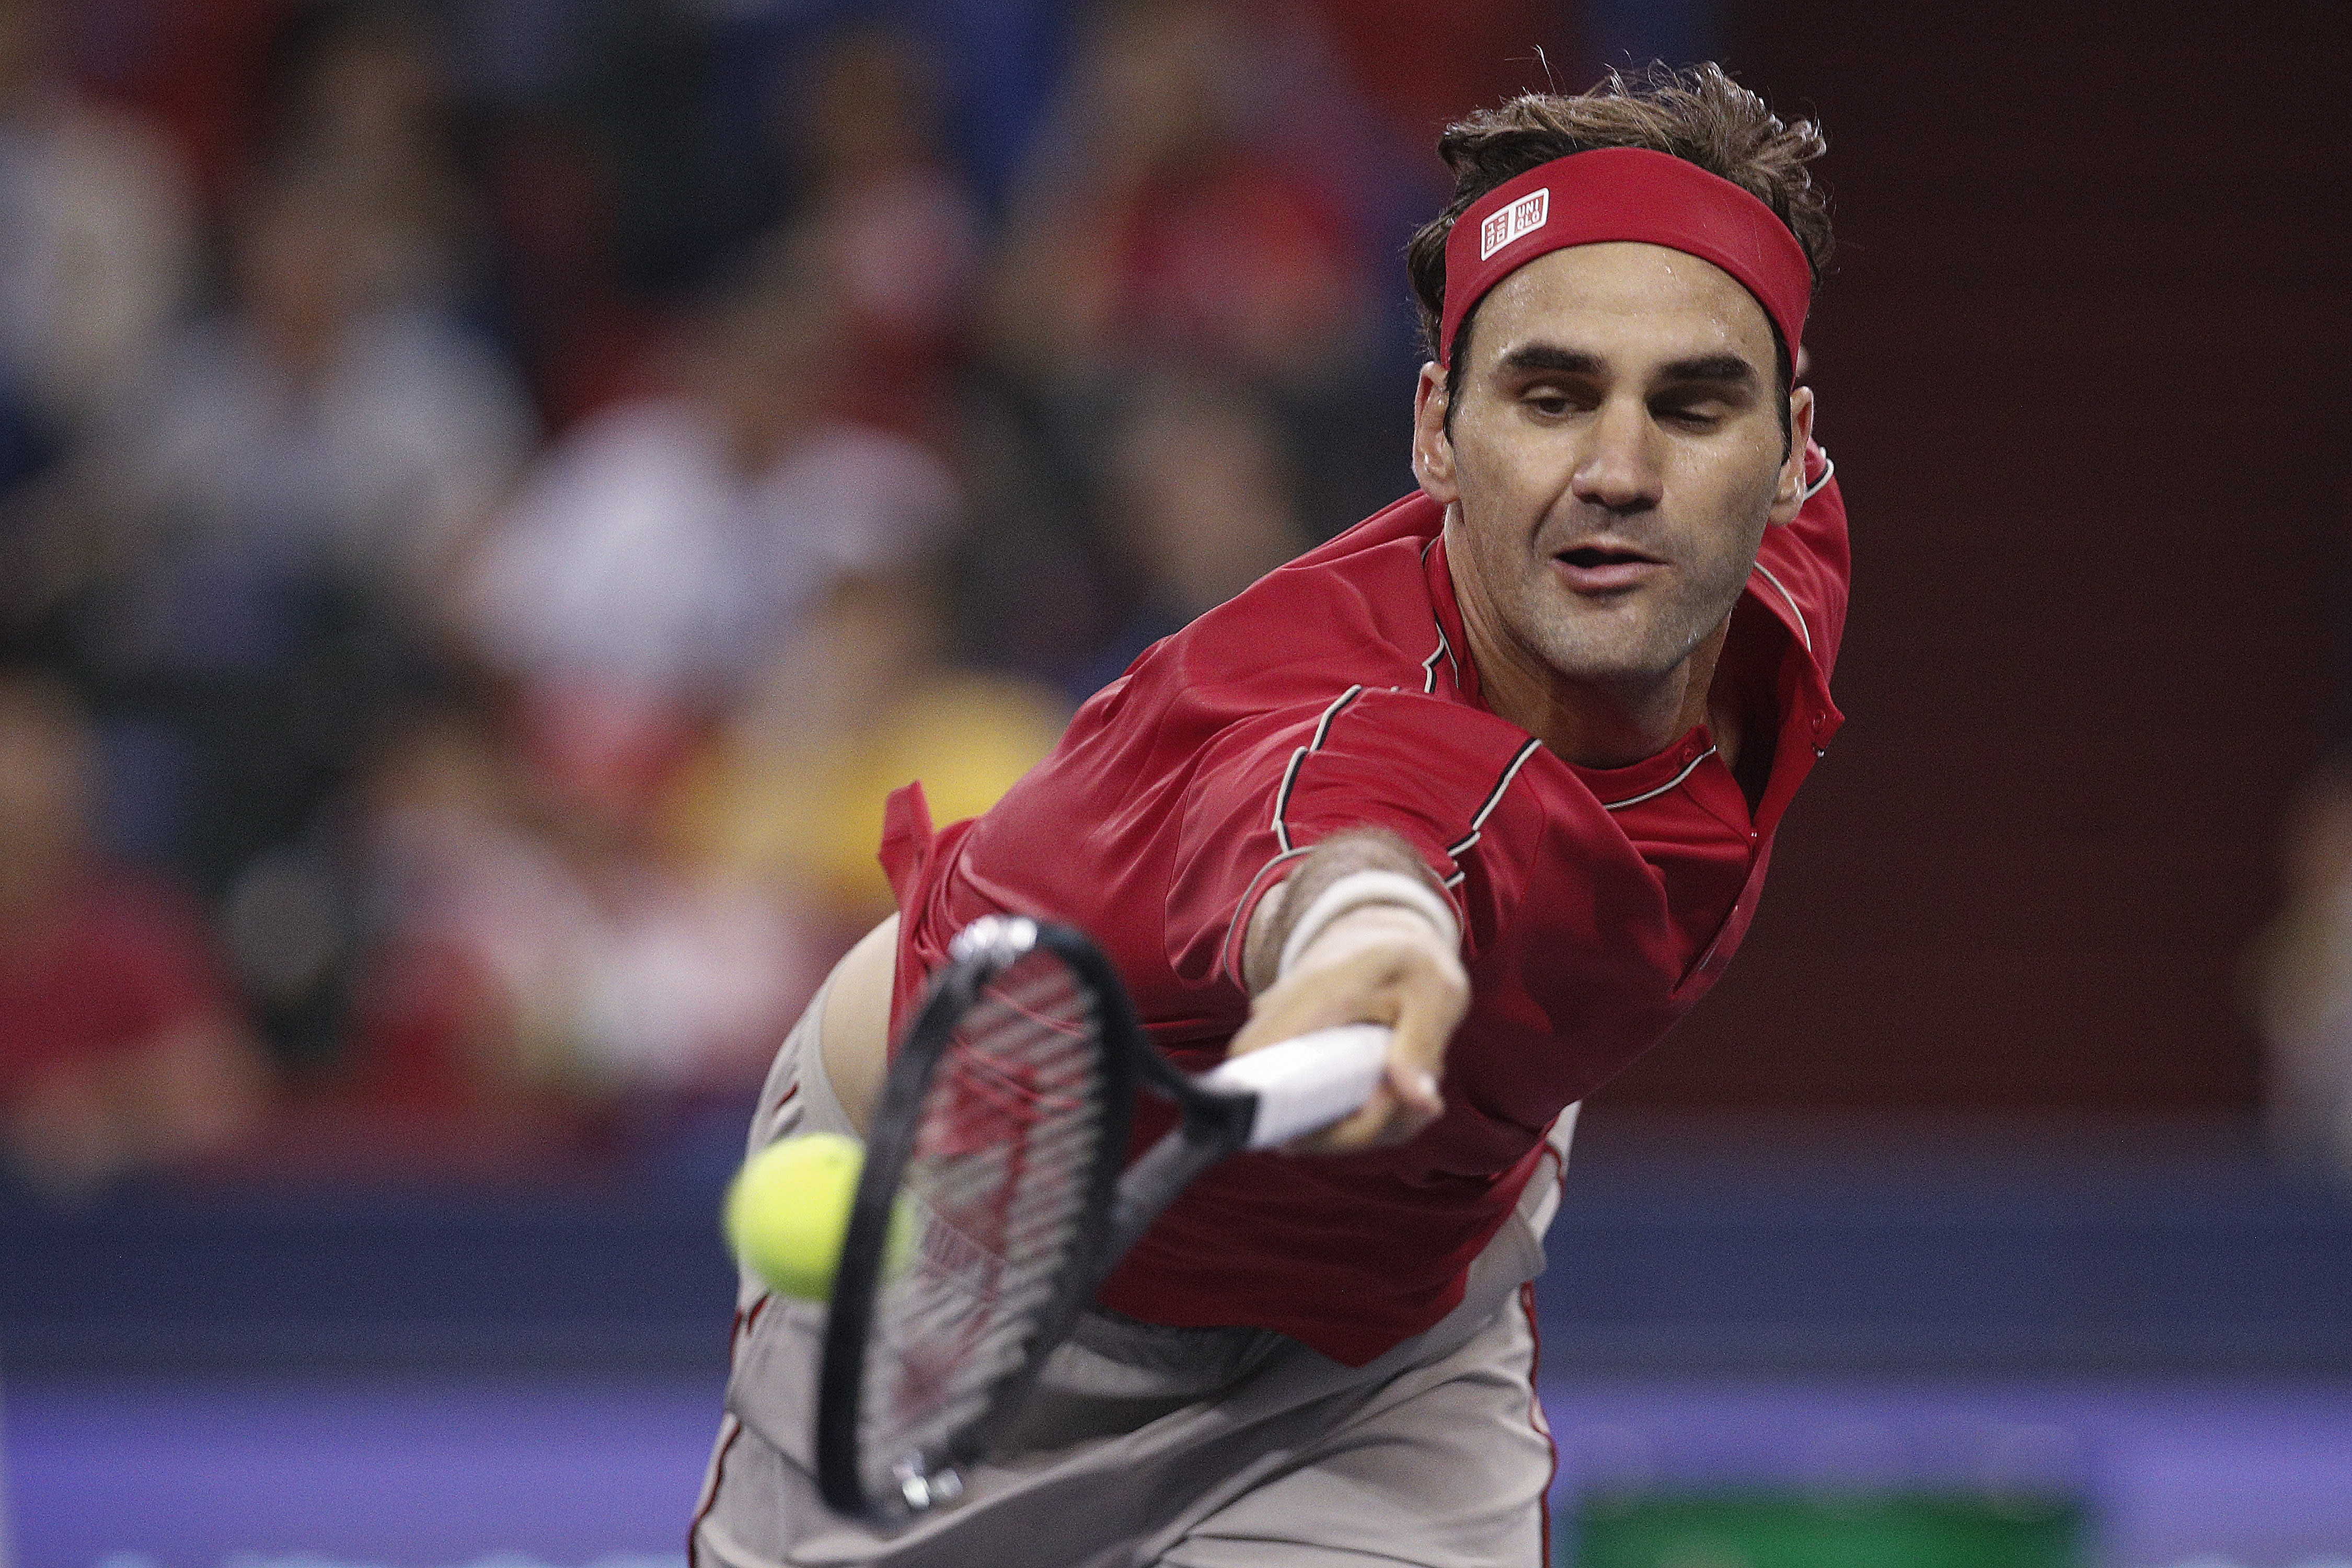 Roger Federer of Switzerland hits a return shot against Albert Ramos-Vinolas of Spain during their men's singles match at the Shanghai Masters tennis tournament at Qizhong Forest Sports City Tennis Center in Shanghai, China, Tuesday, Oct. 8, 2019. (AP Photo/Andy Wong)